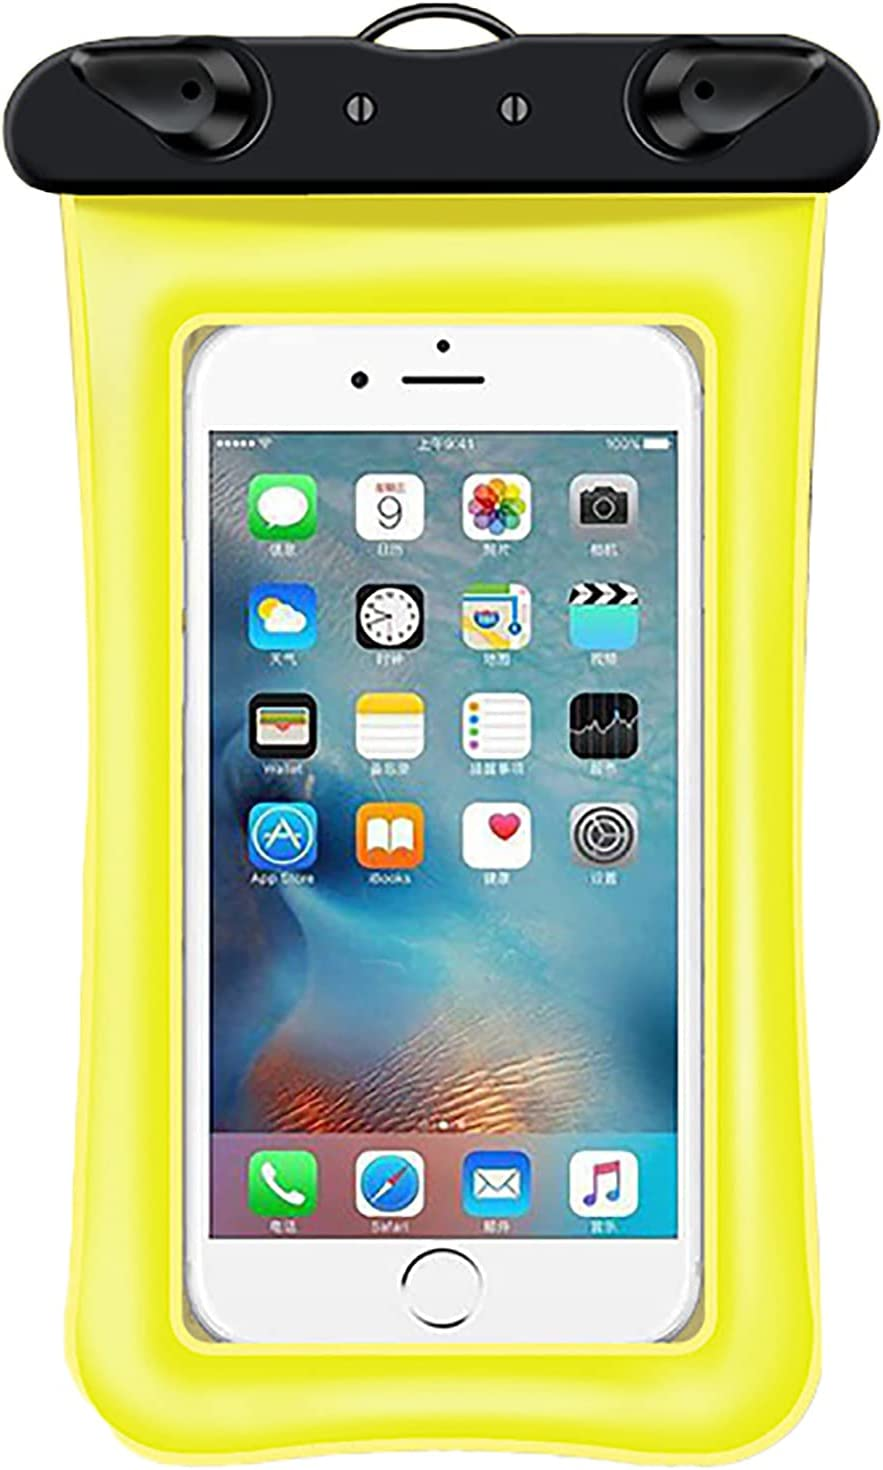 Anjing Cell Phone Dry Bags Waterproof Case Beach Accessories Phone Pouch Easy to Use Keep Your Phone and Valuables Safe and Dry